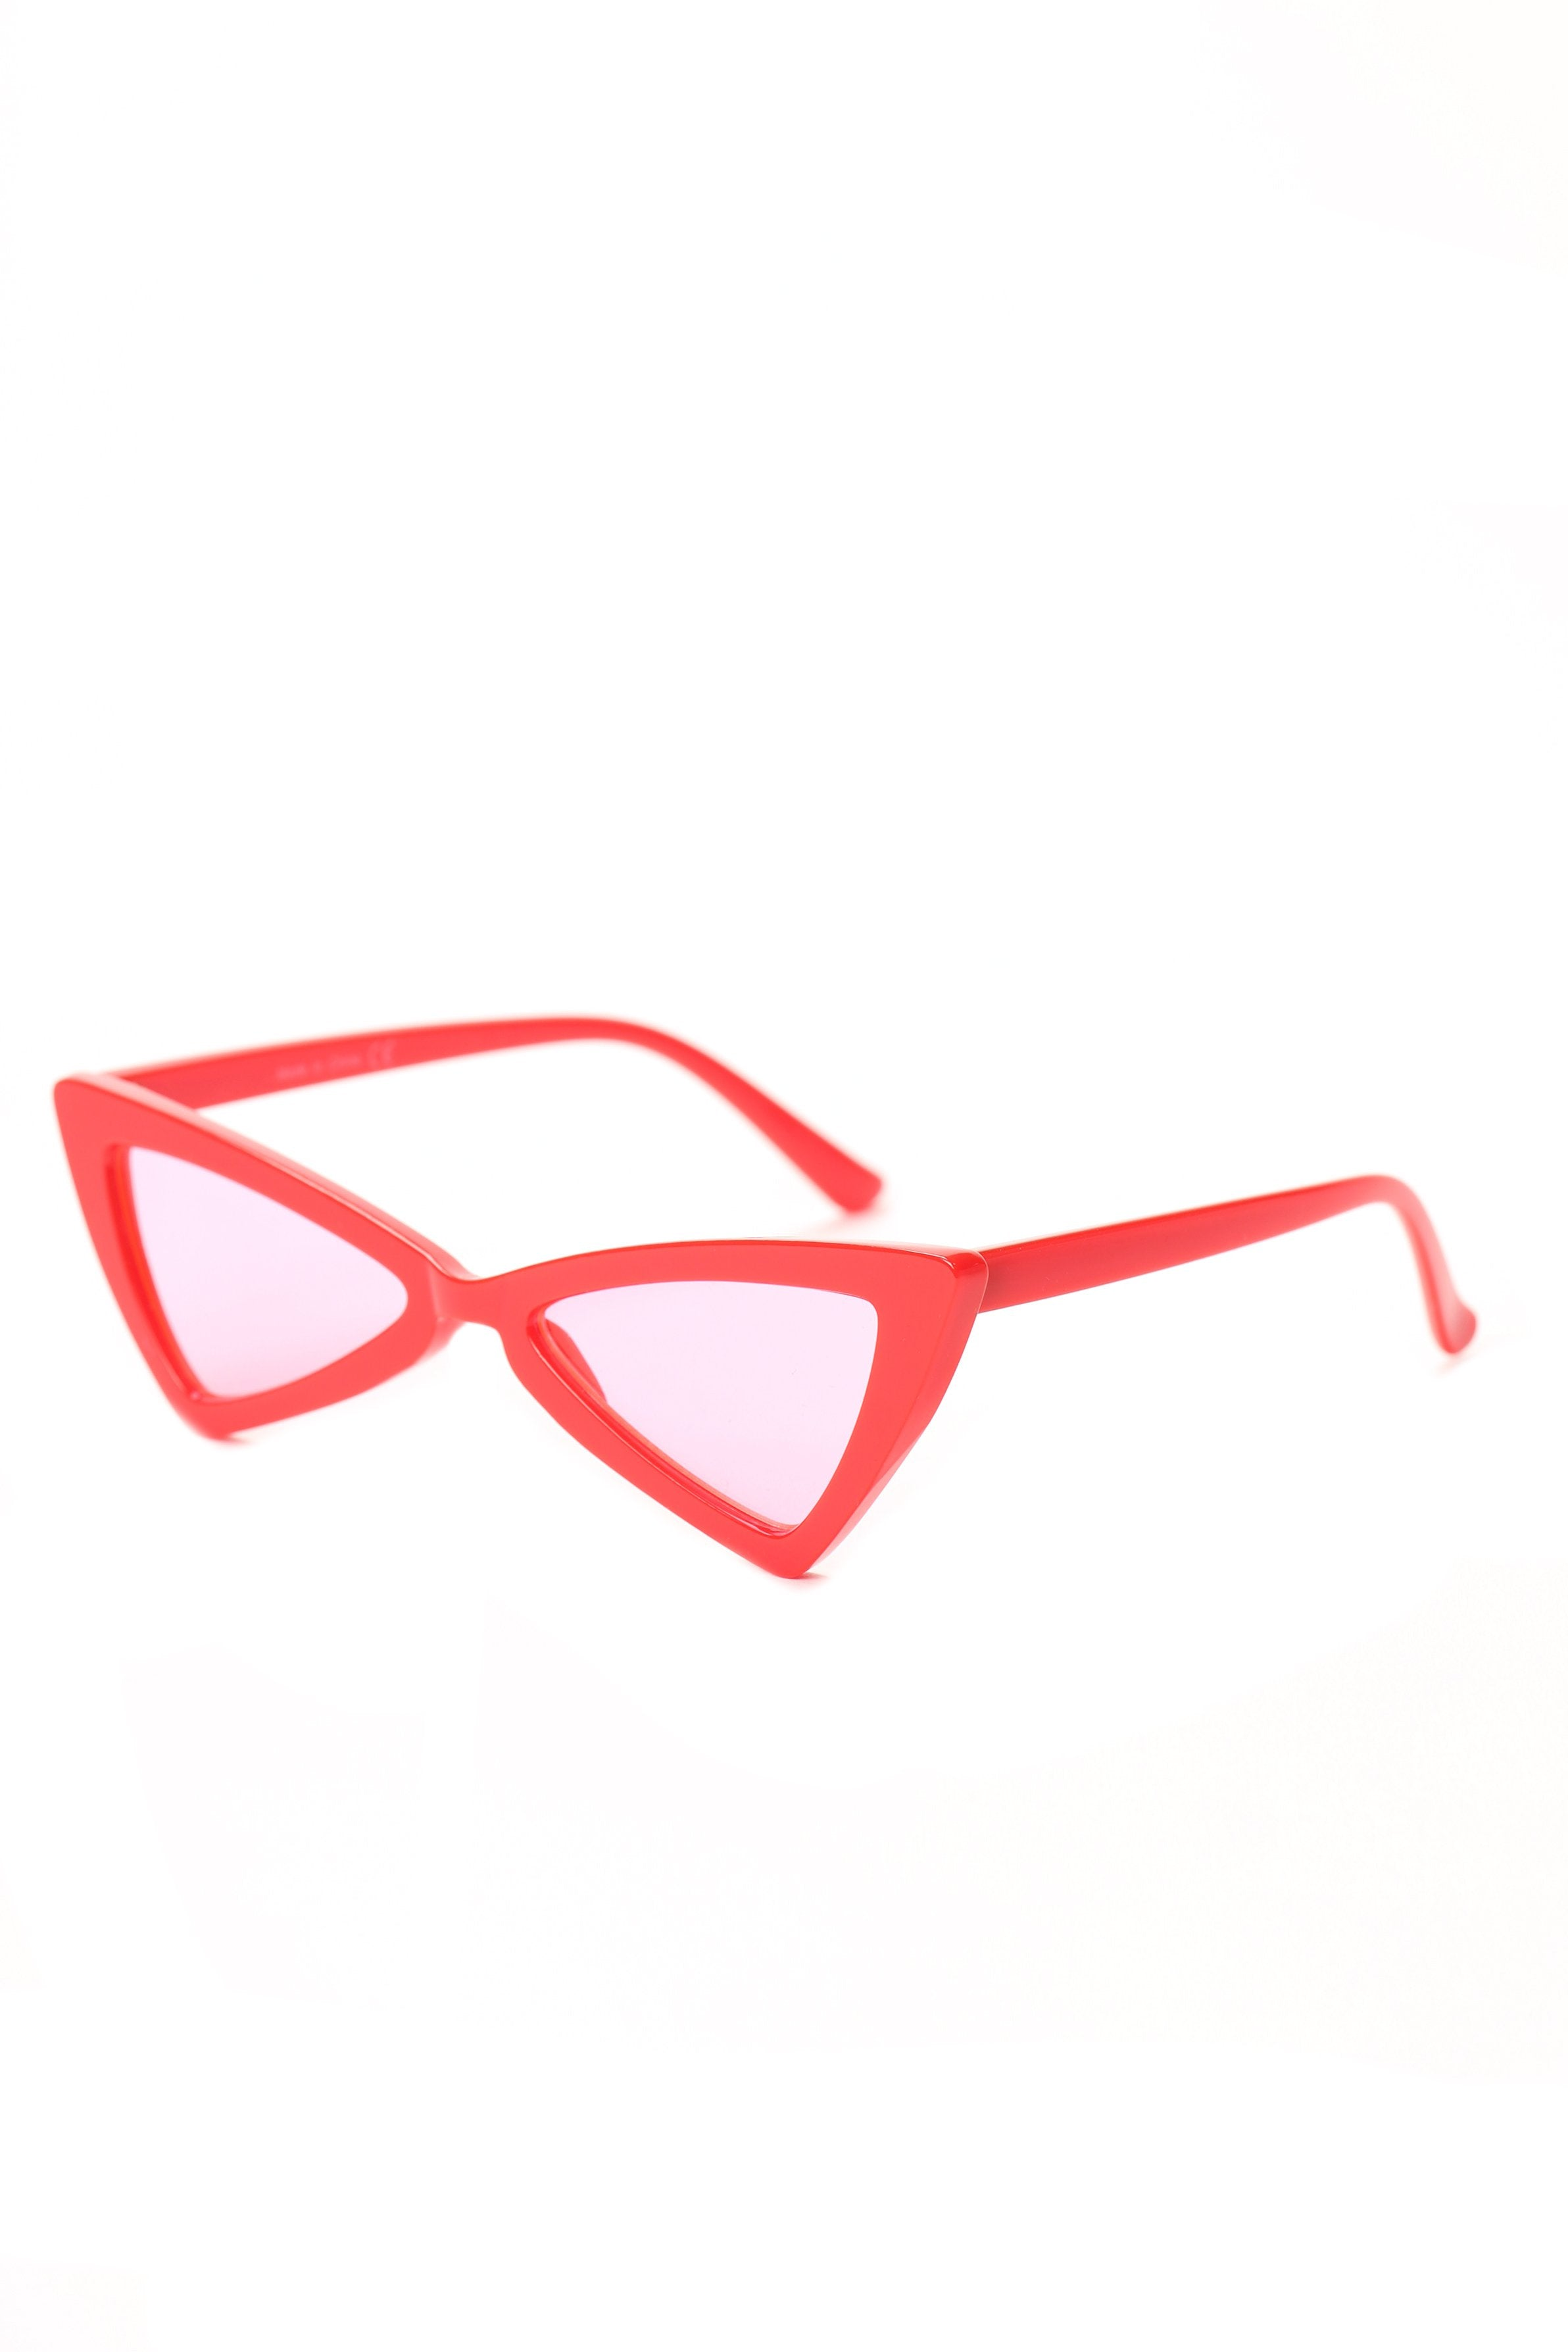 Women's Retro High Pointed Cat Eye Sunglasses - Red Side